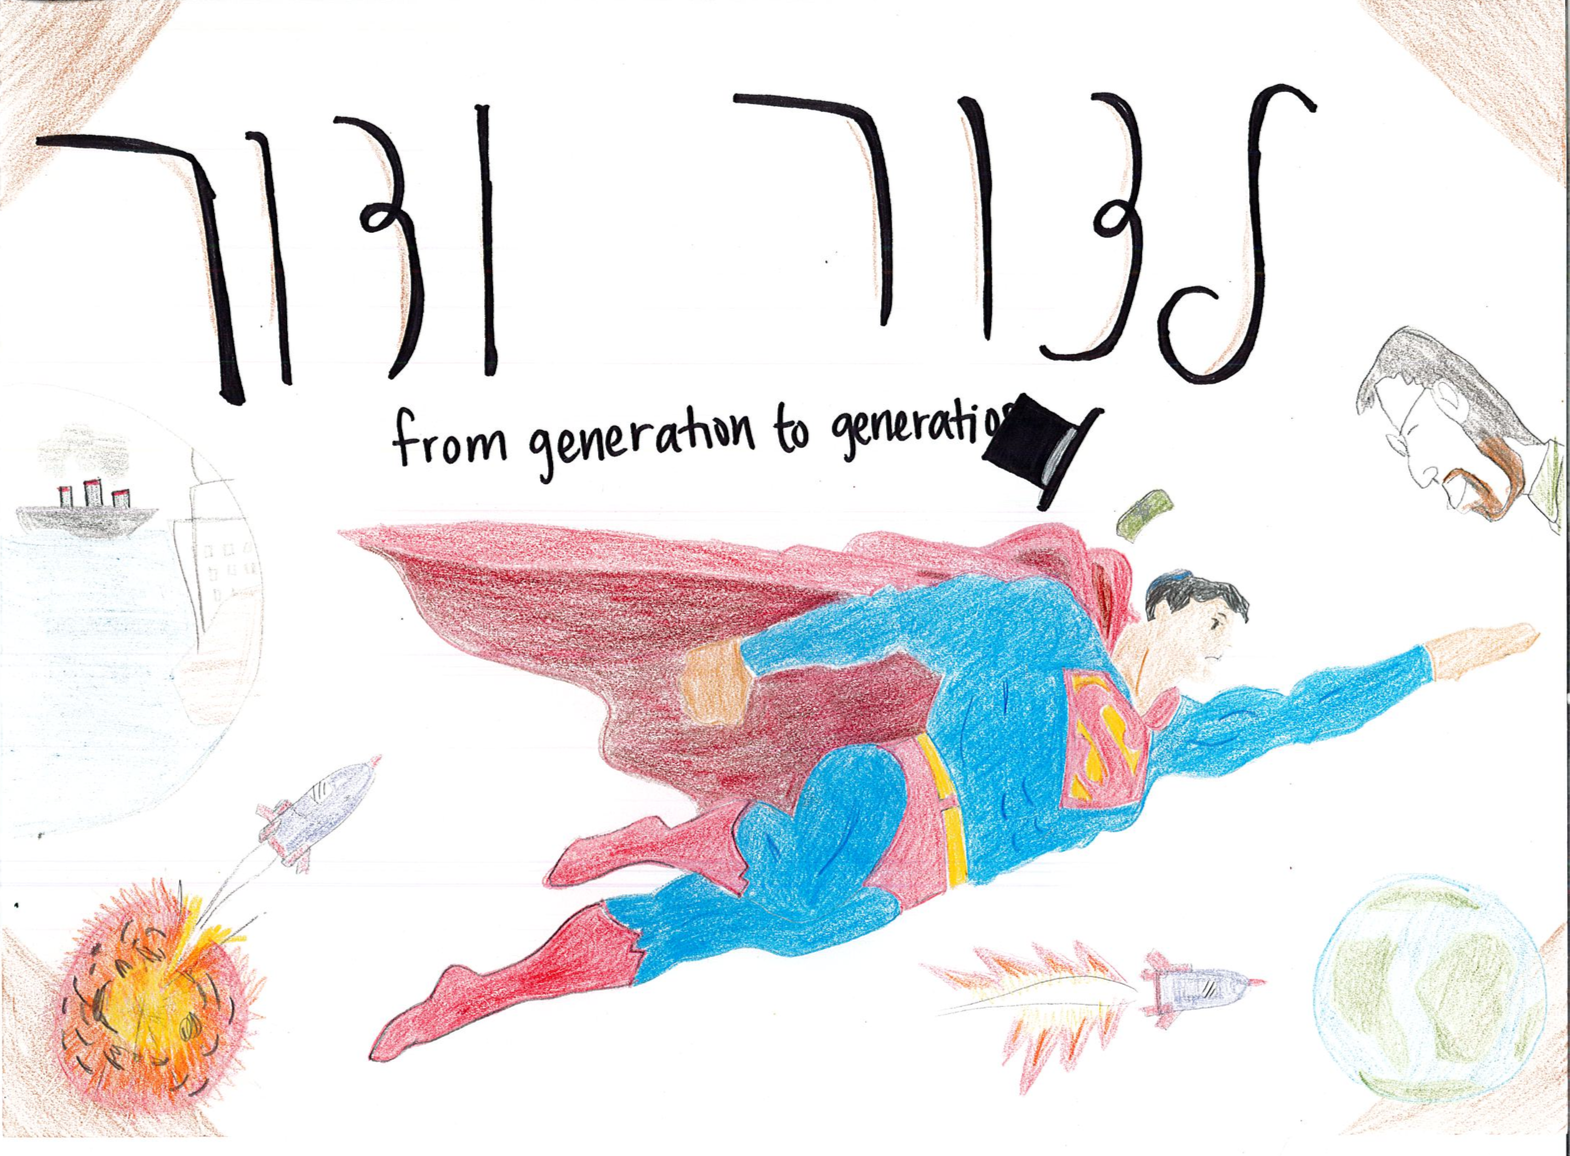 Superman and Religion